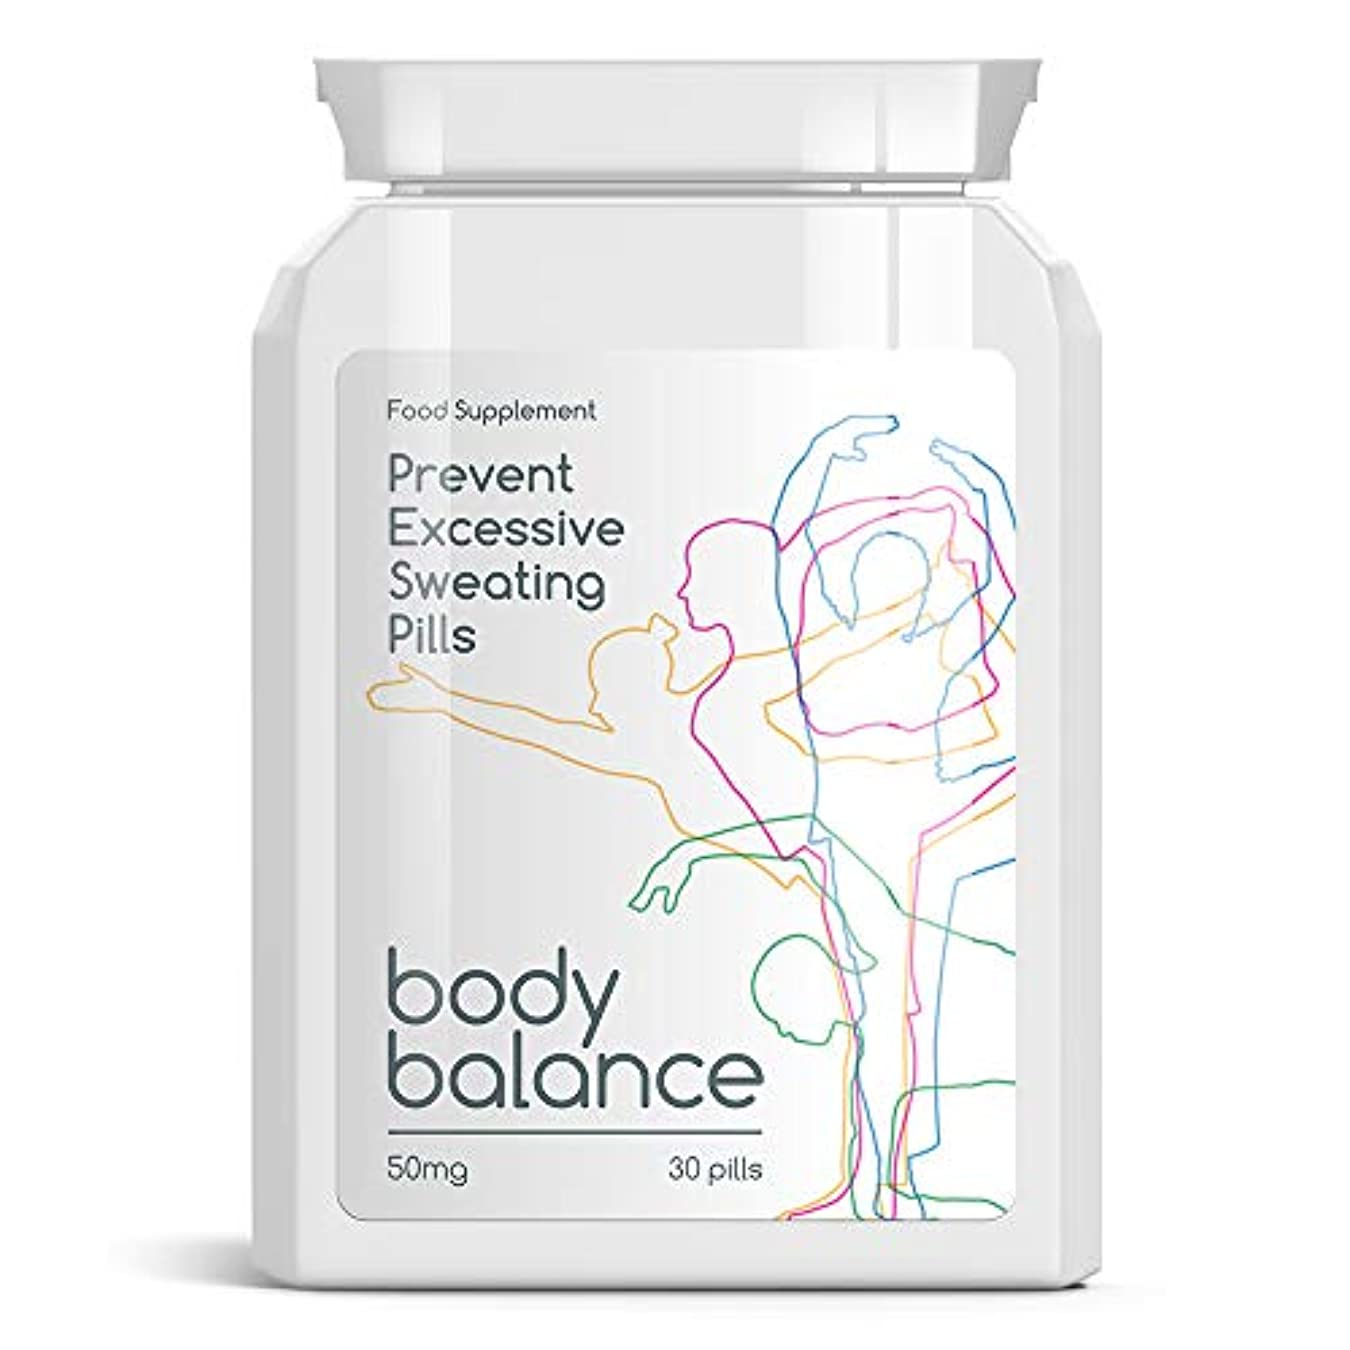 ピラミッド買い物に行く現れるBODY BALANCE防ぐ過度の発汗薬ANTI - SWEAT Bodibaransu fusegu kado no hakkan-yaku ANTI - sū~etto